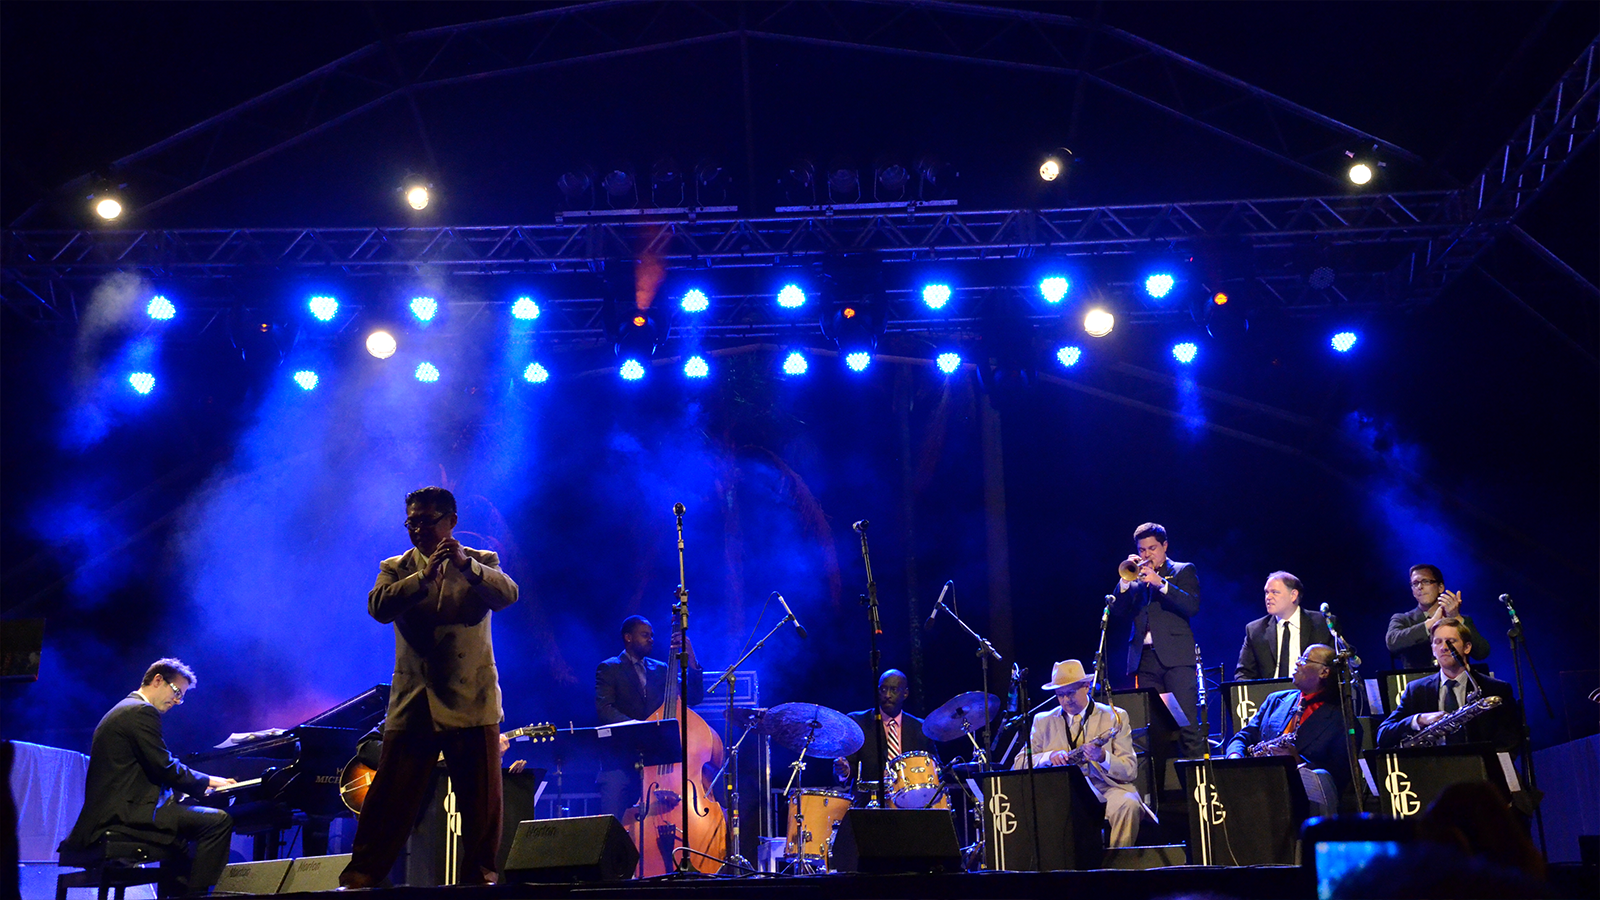 [Summertime Swingwith the George Gee Swing Orchestra] Photo courtesy of artist